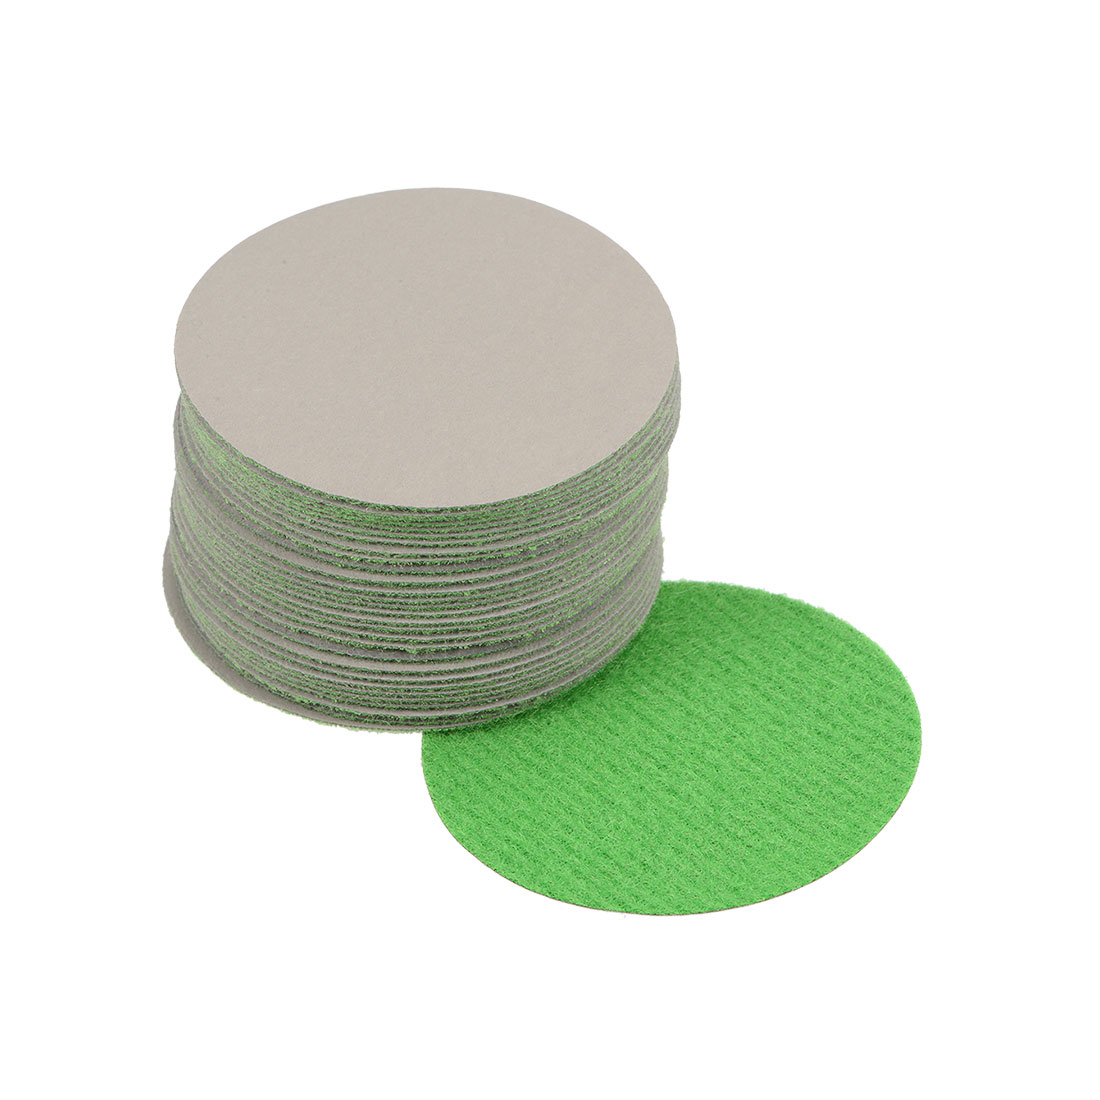 2 inch Wet Dry Discs 3000 Grit Hook and Loop Sanding Disc Silicon Carbide 30pcs